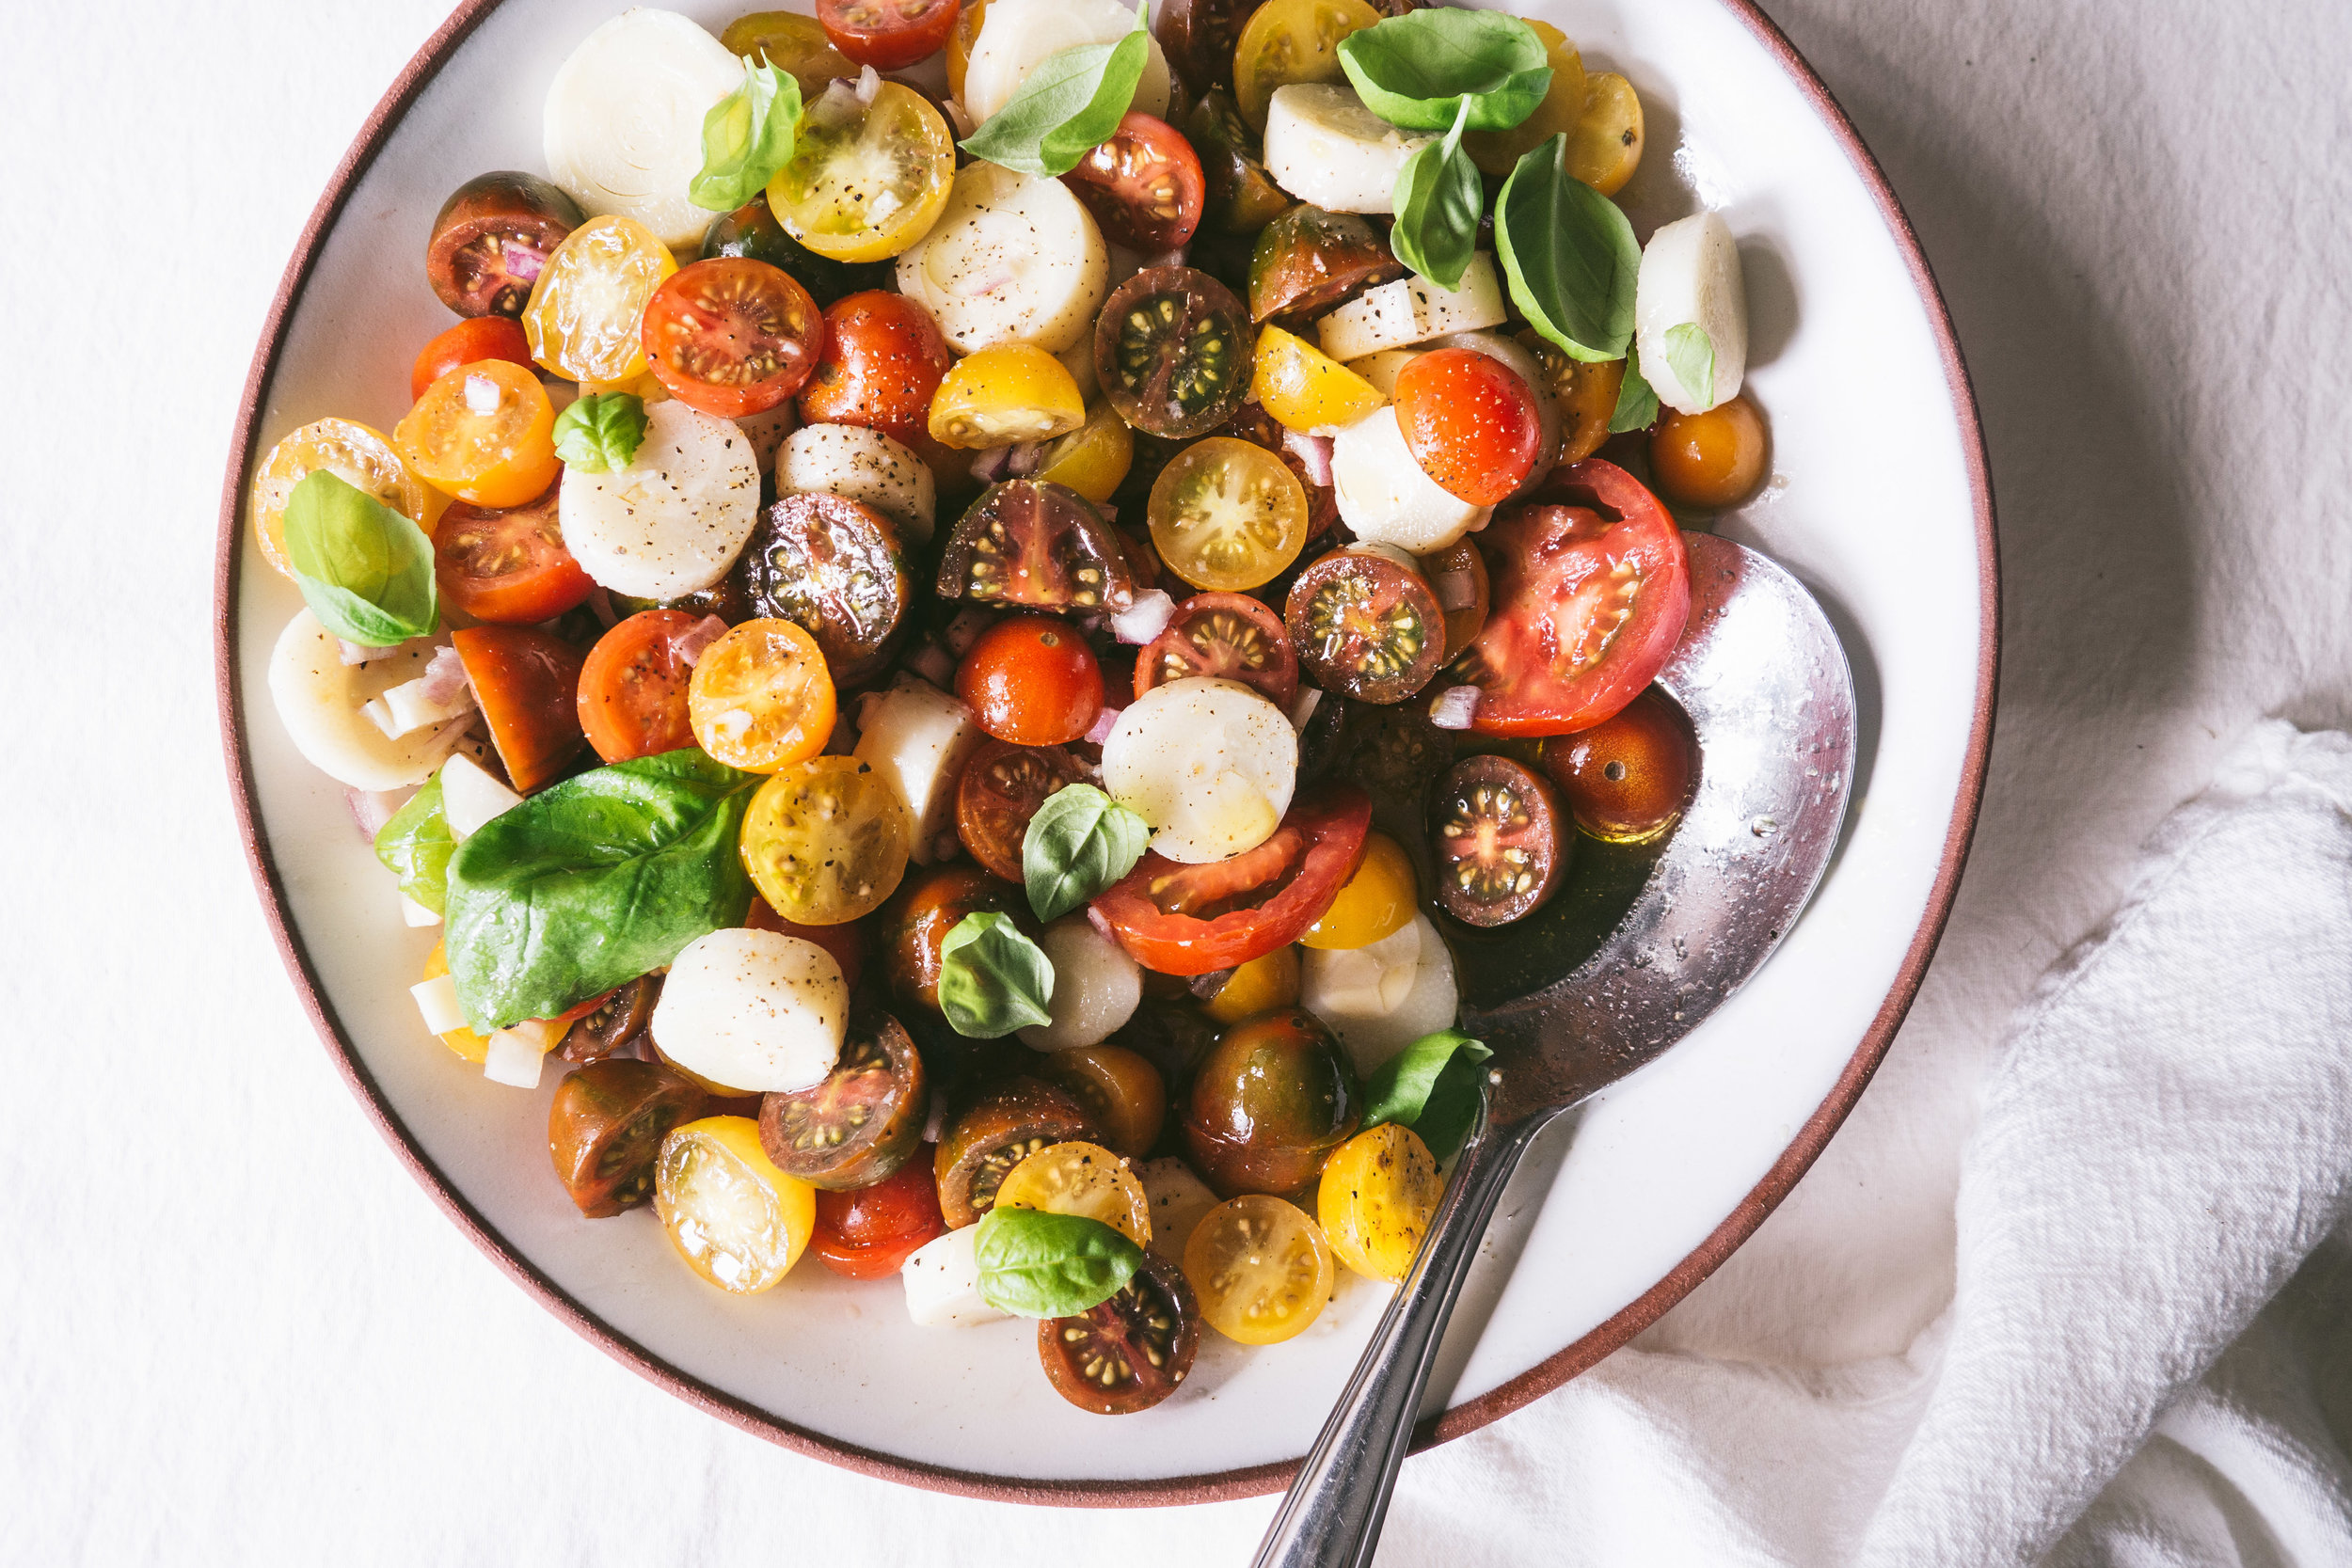 Heirloom Tomato Salad with Hearts of Palm